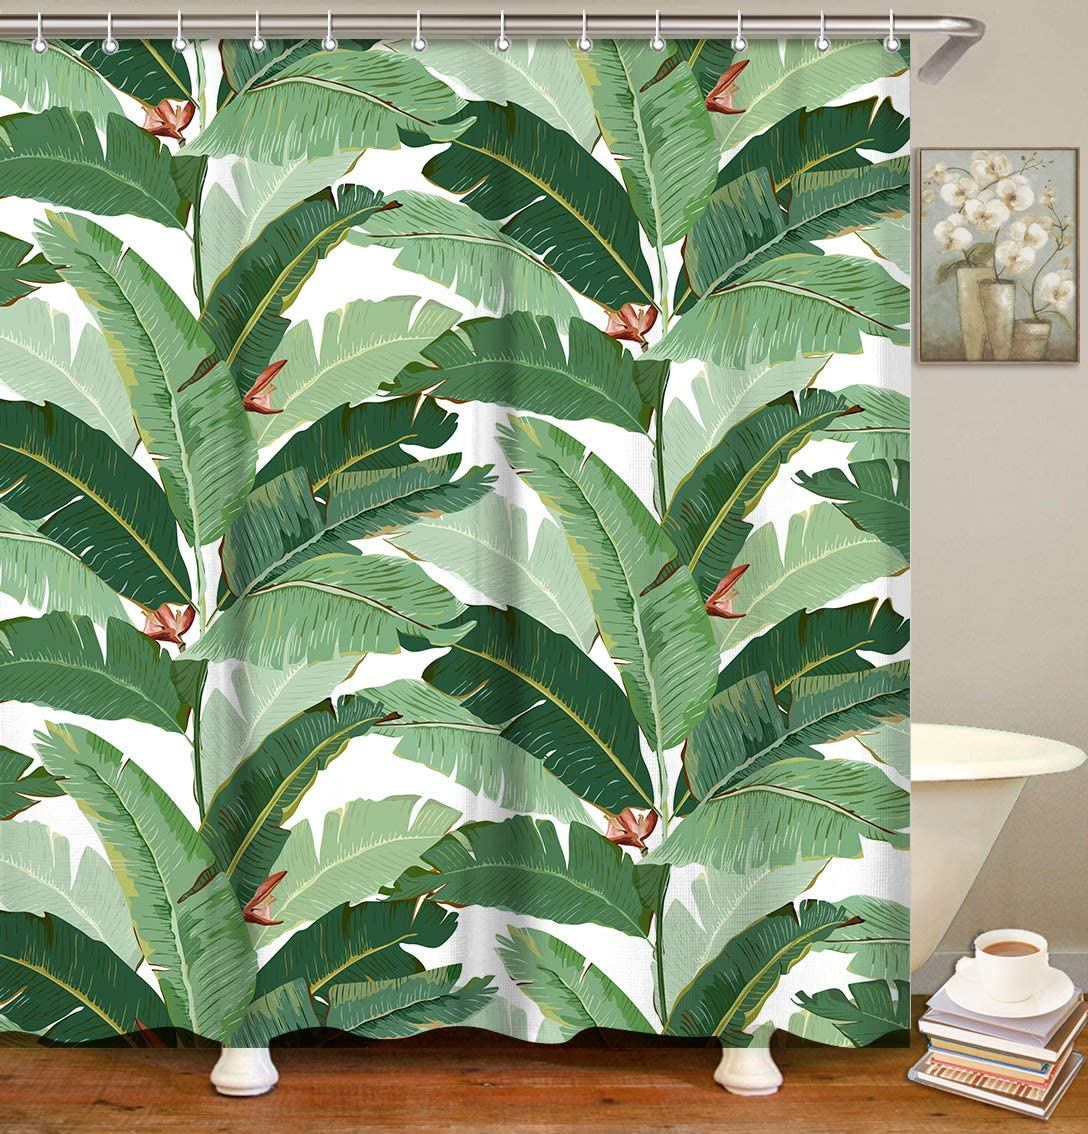 Amazon Com Livilan Tropical Shower Curtain Green Banana Leaf Fabric Bathroom Curtains Set With Hooks Summer Palm Leaves Bathroom Decor 72x72 Inches Machine Washable Home Kitchen Sign up for uo rewards and get 10% off your next purchase. livilan tropical shower curtain green banana leaf fabric bathroom curtains set with hooks summer palm leaves bathroom decor 72x72 inches machine